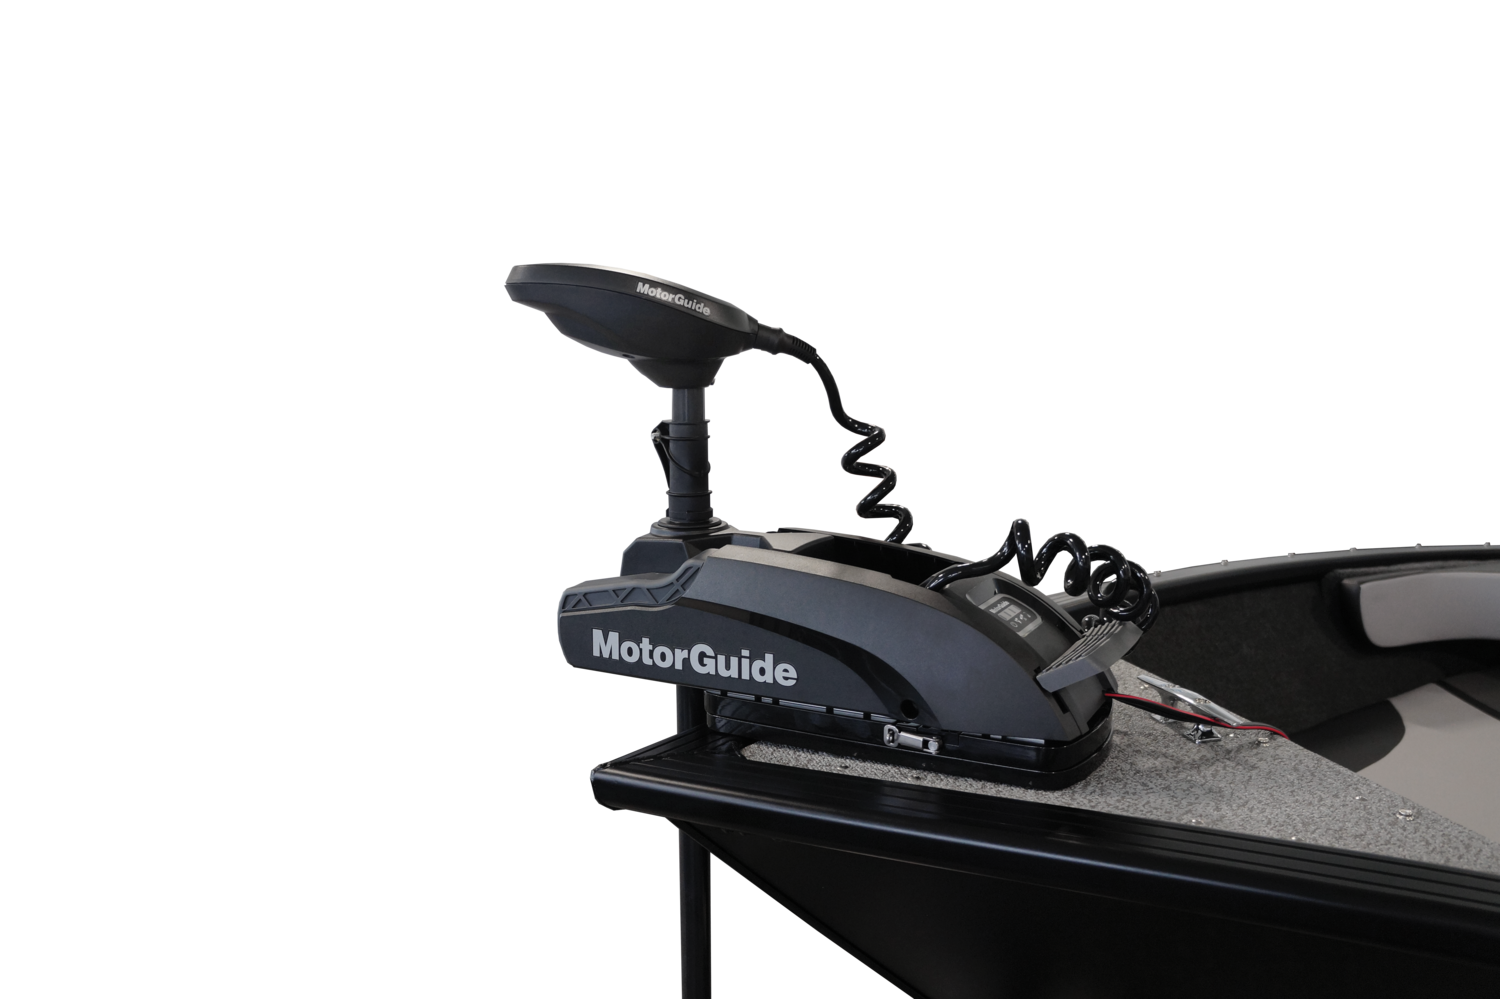 MotorGuide Xi3 Wireless Trolling Motor Bundle